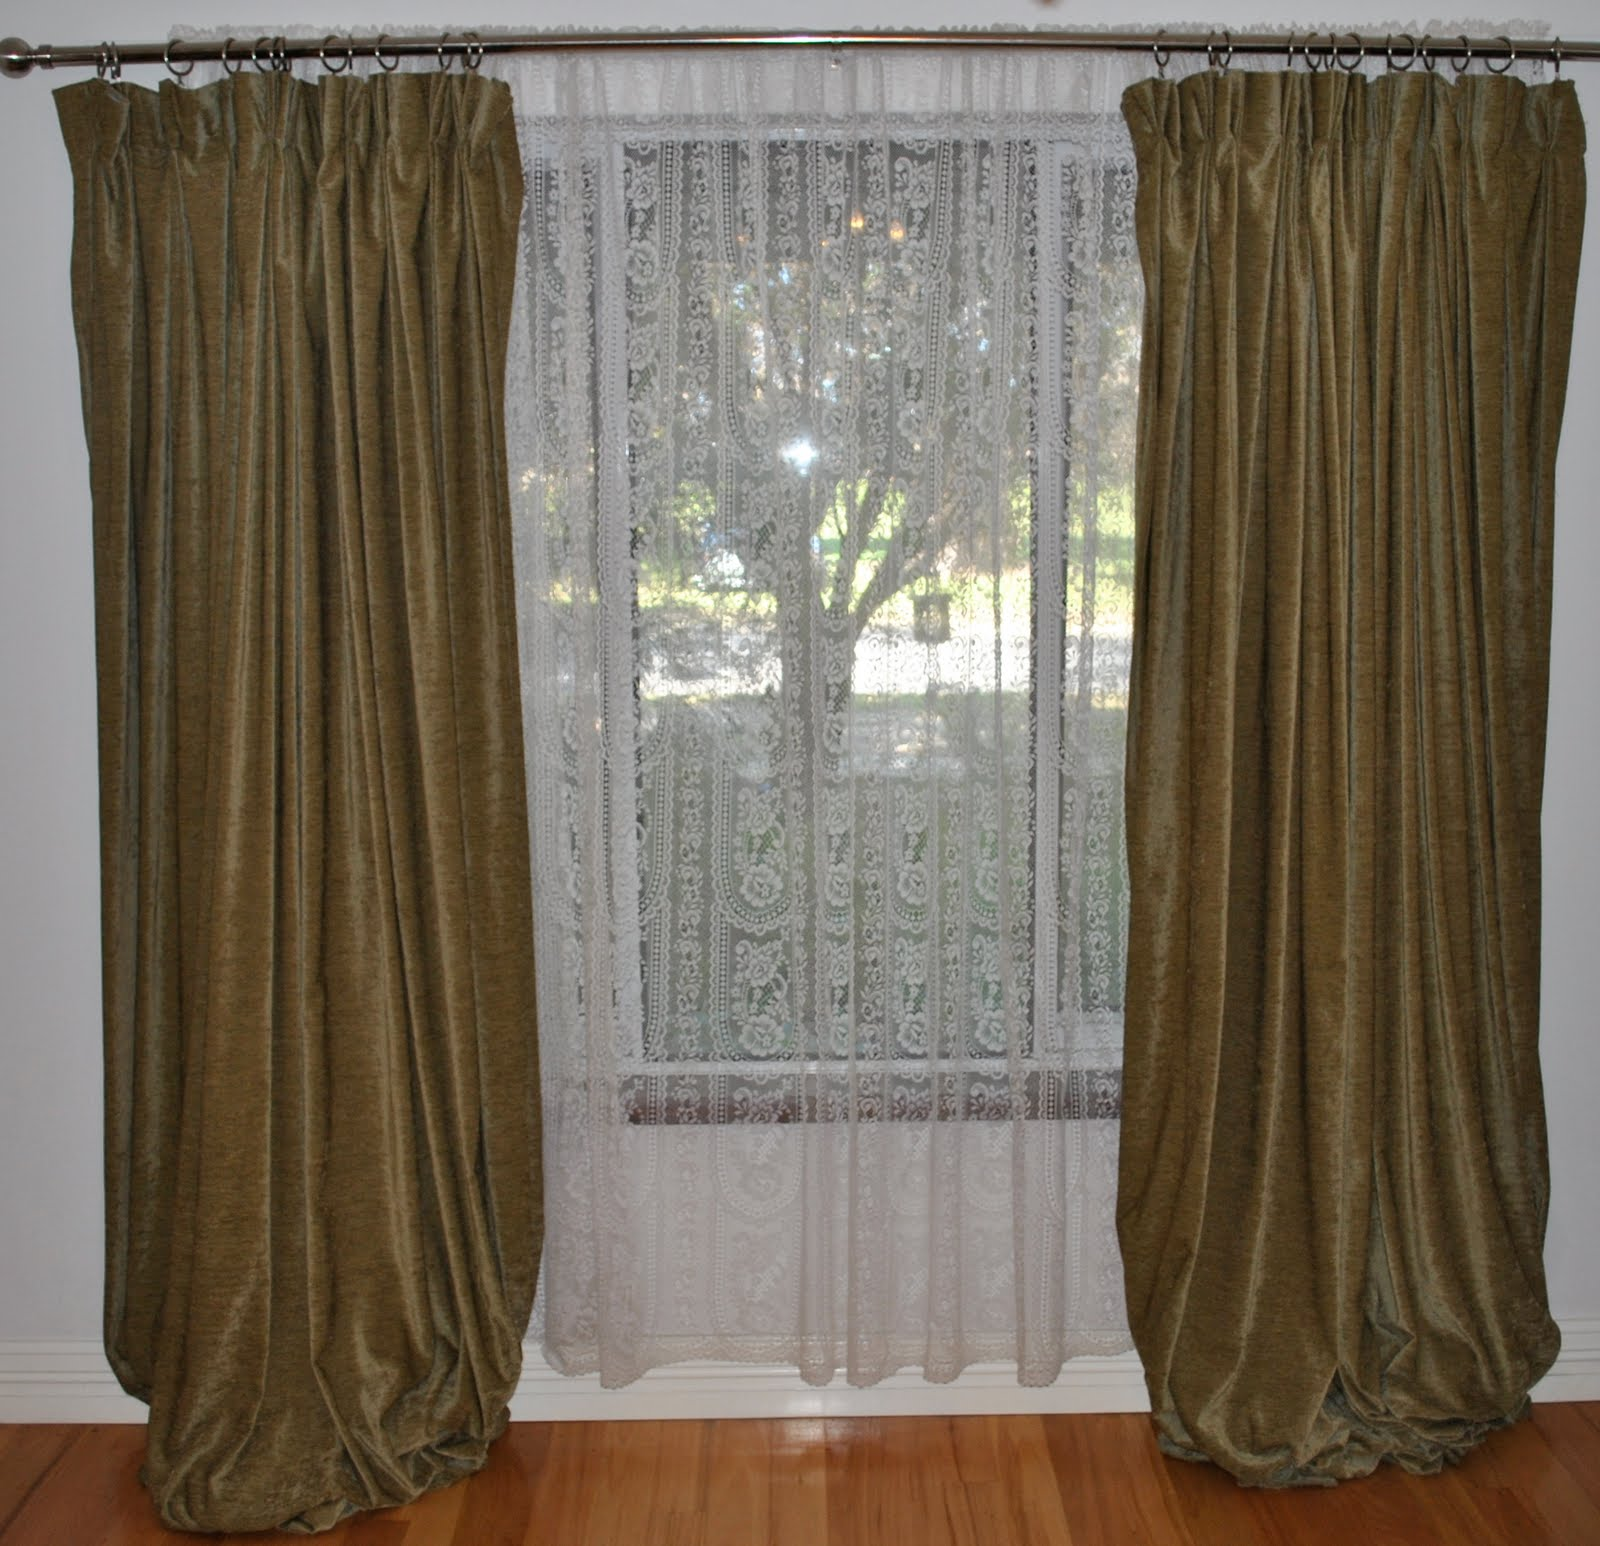 Bedroom curtains Bedroom curtain ideas